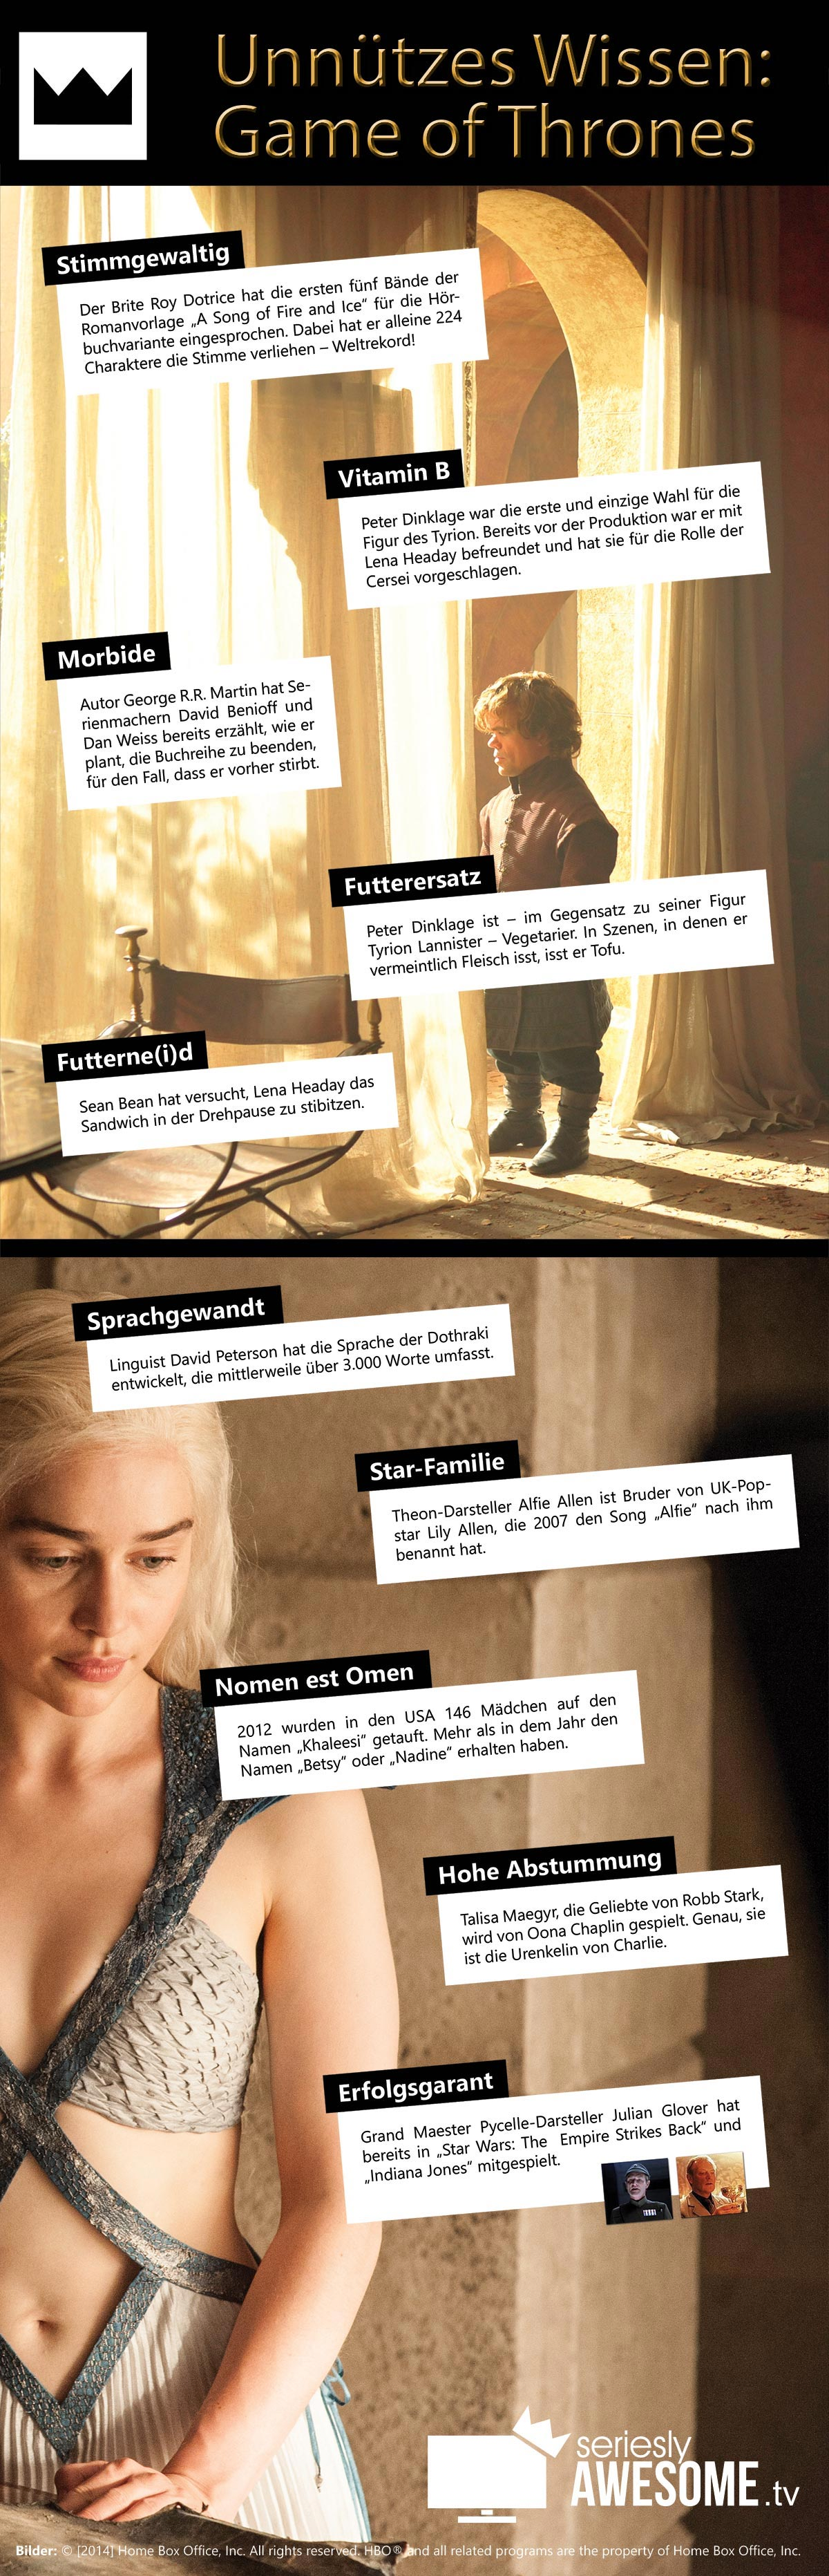 Unnützes Wissen zu Game of Thrones GoT-facts